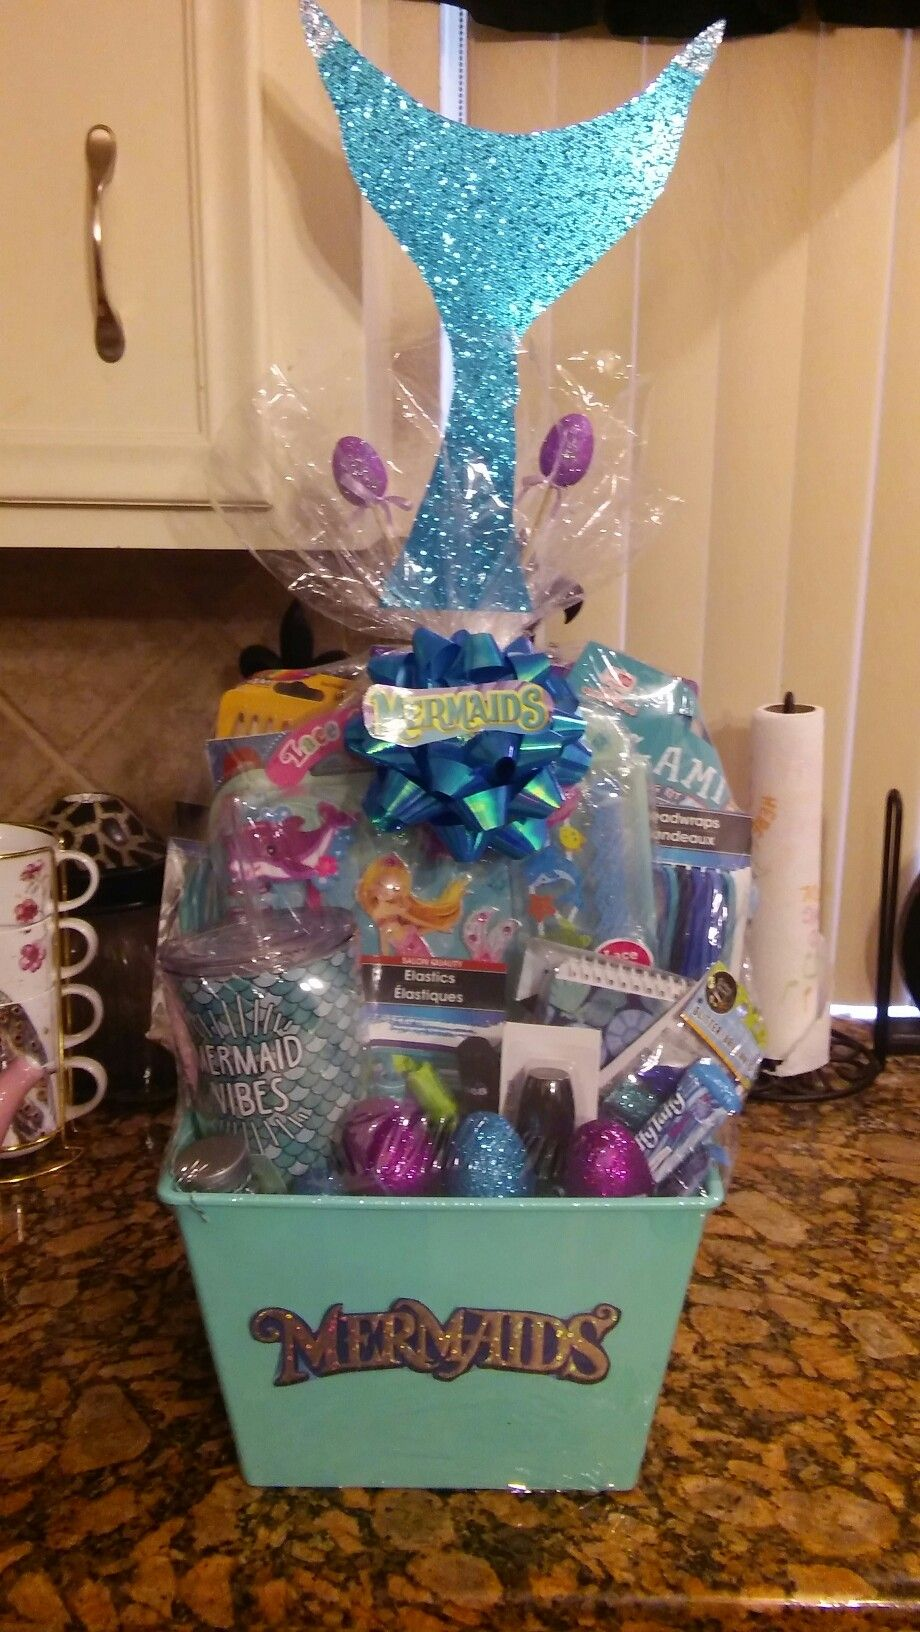 Mermaid easter basket gift baskets pinterest easter baskets mermaid easter basket negle Image collections